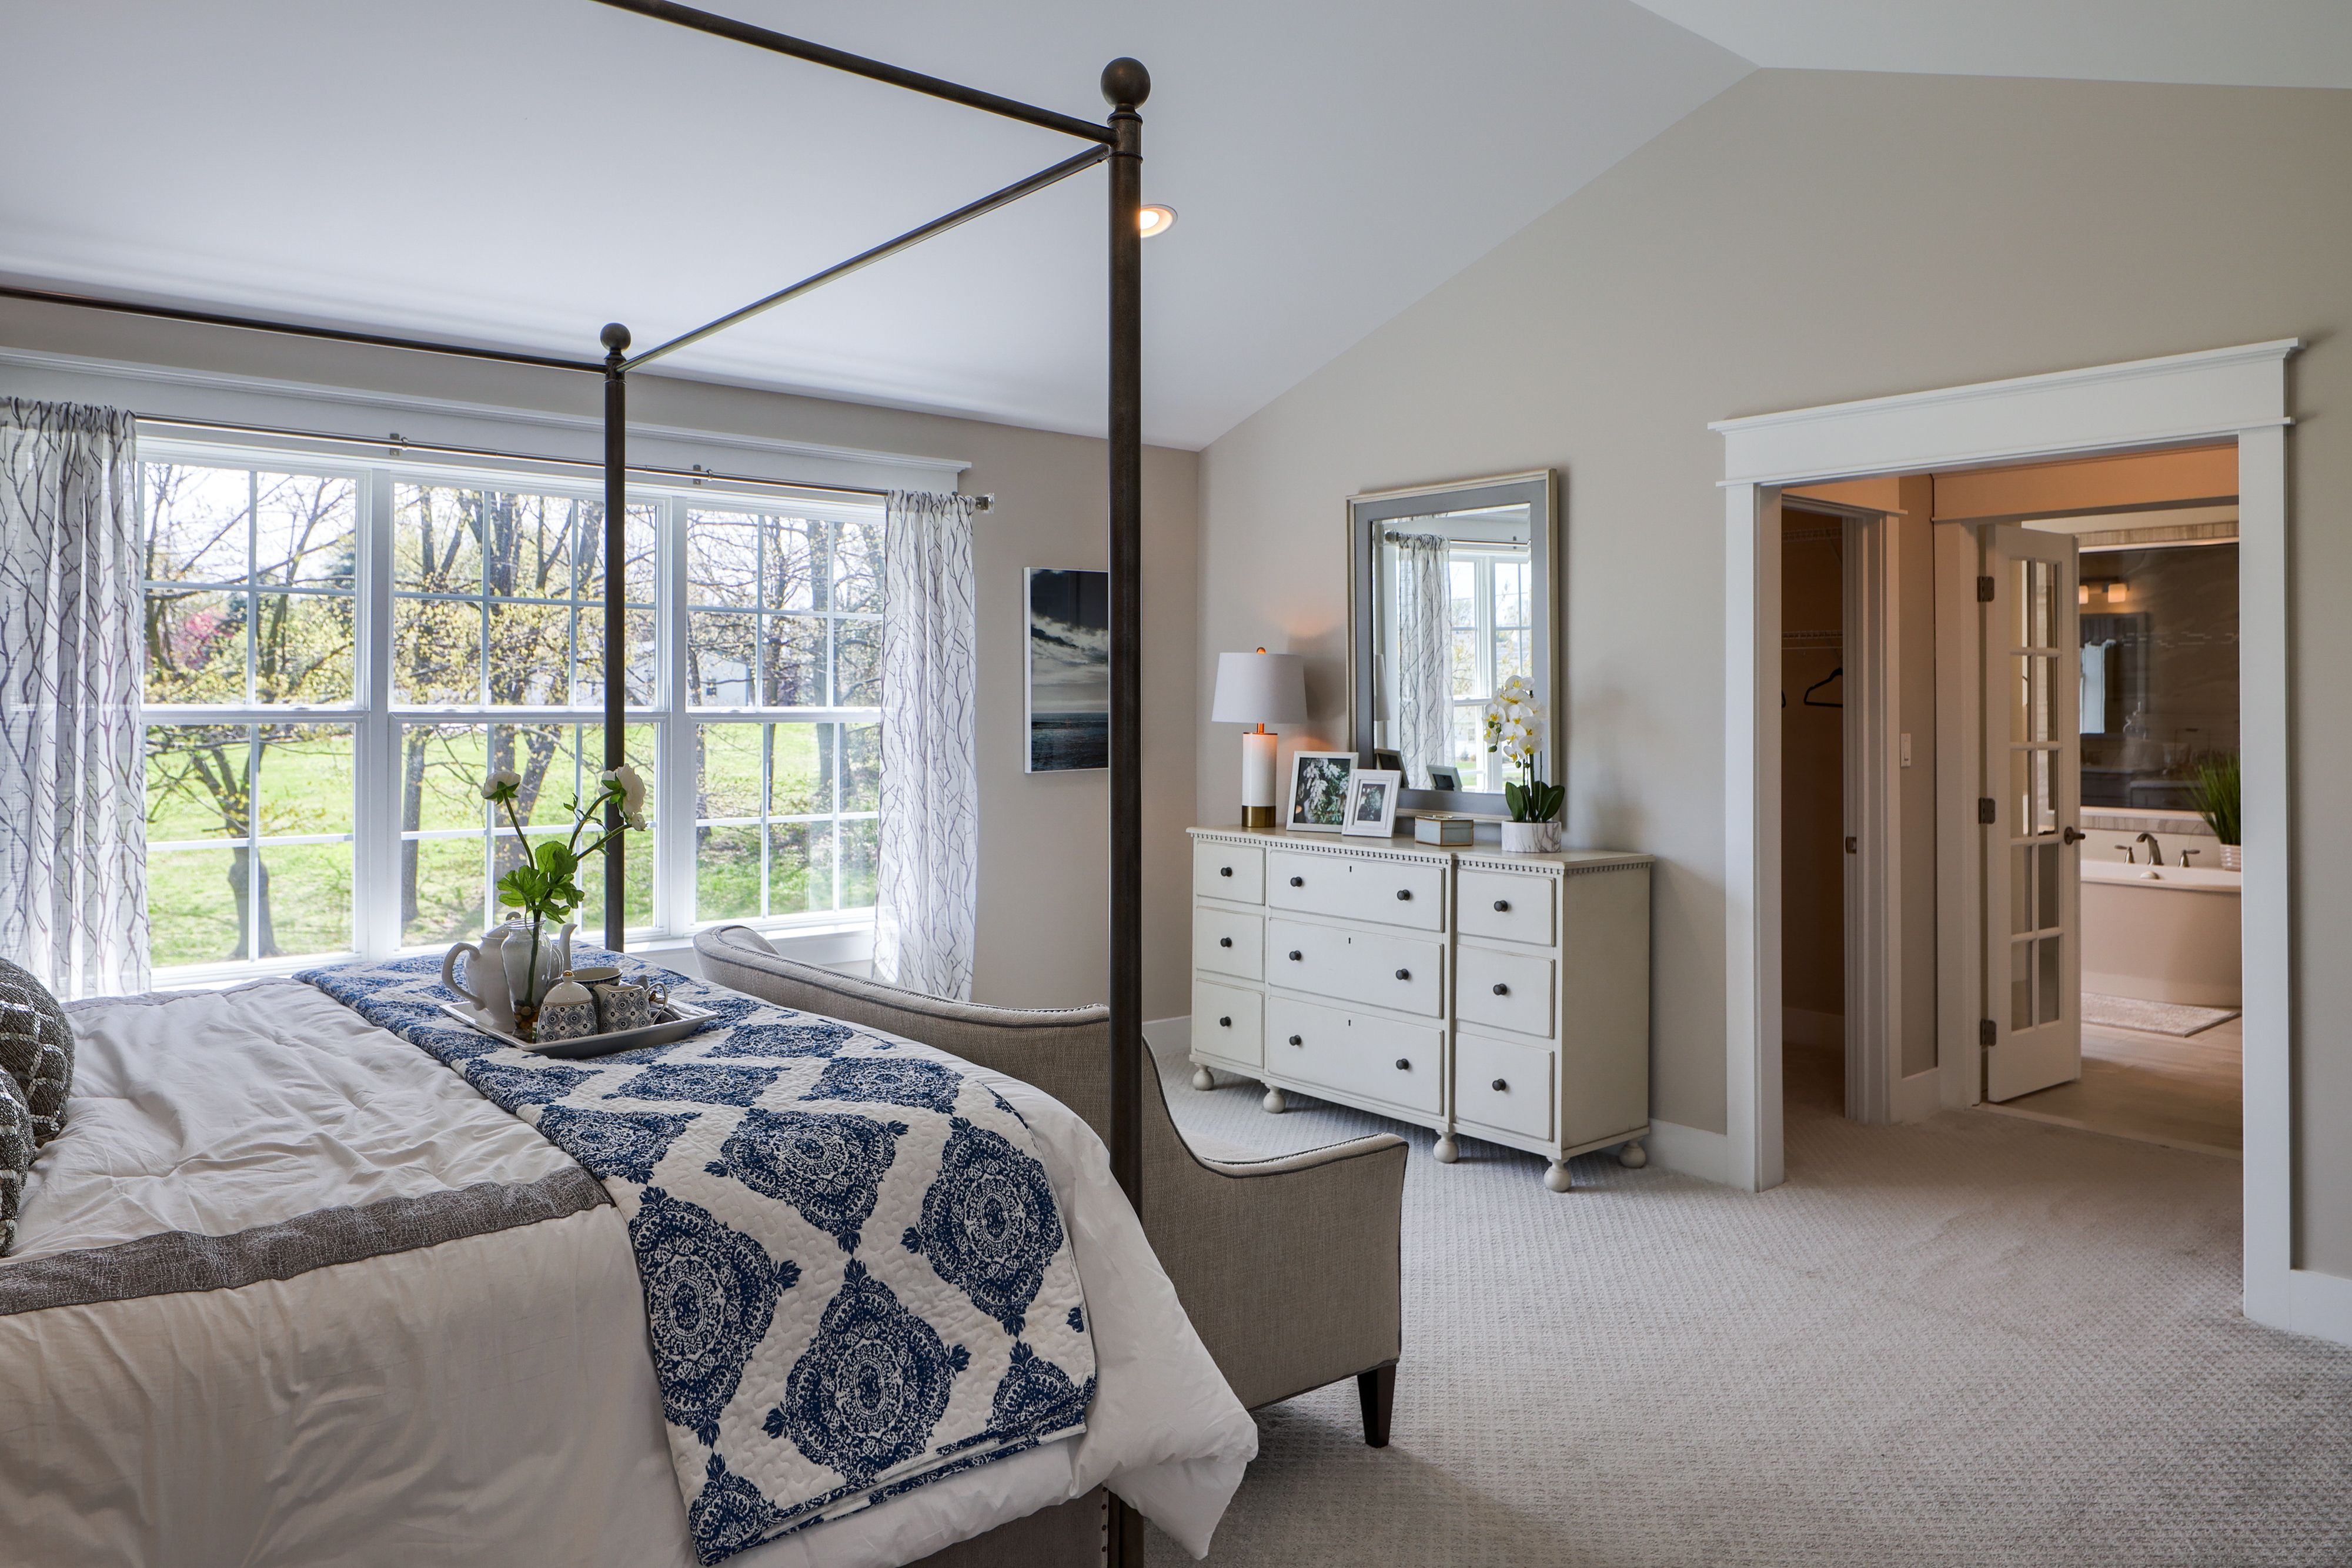 Bedroom featured in the Covington Heritage By Keystone Custom Homes in Lancaster, PA